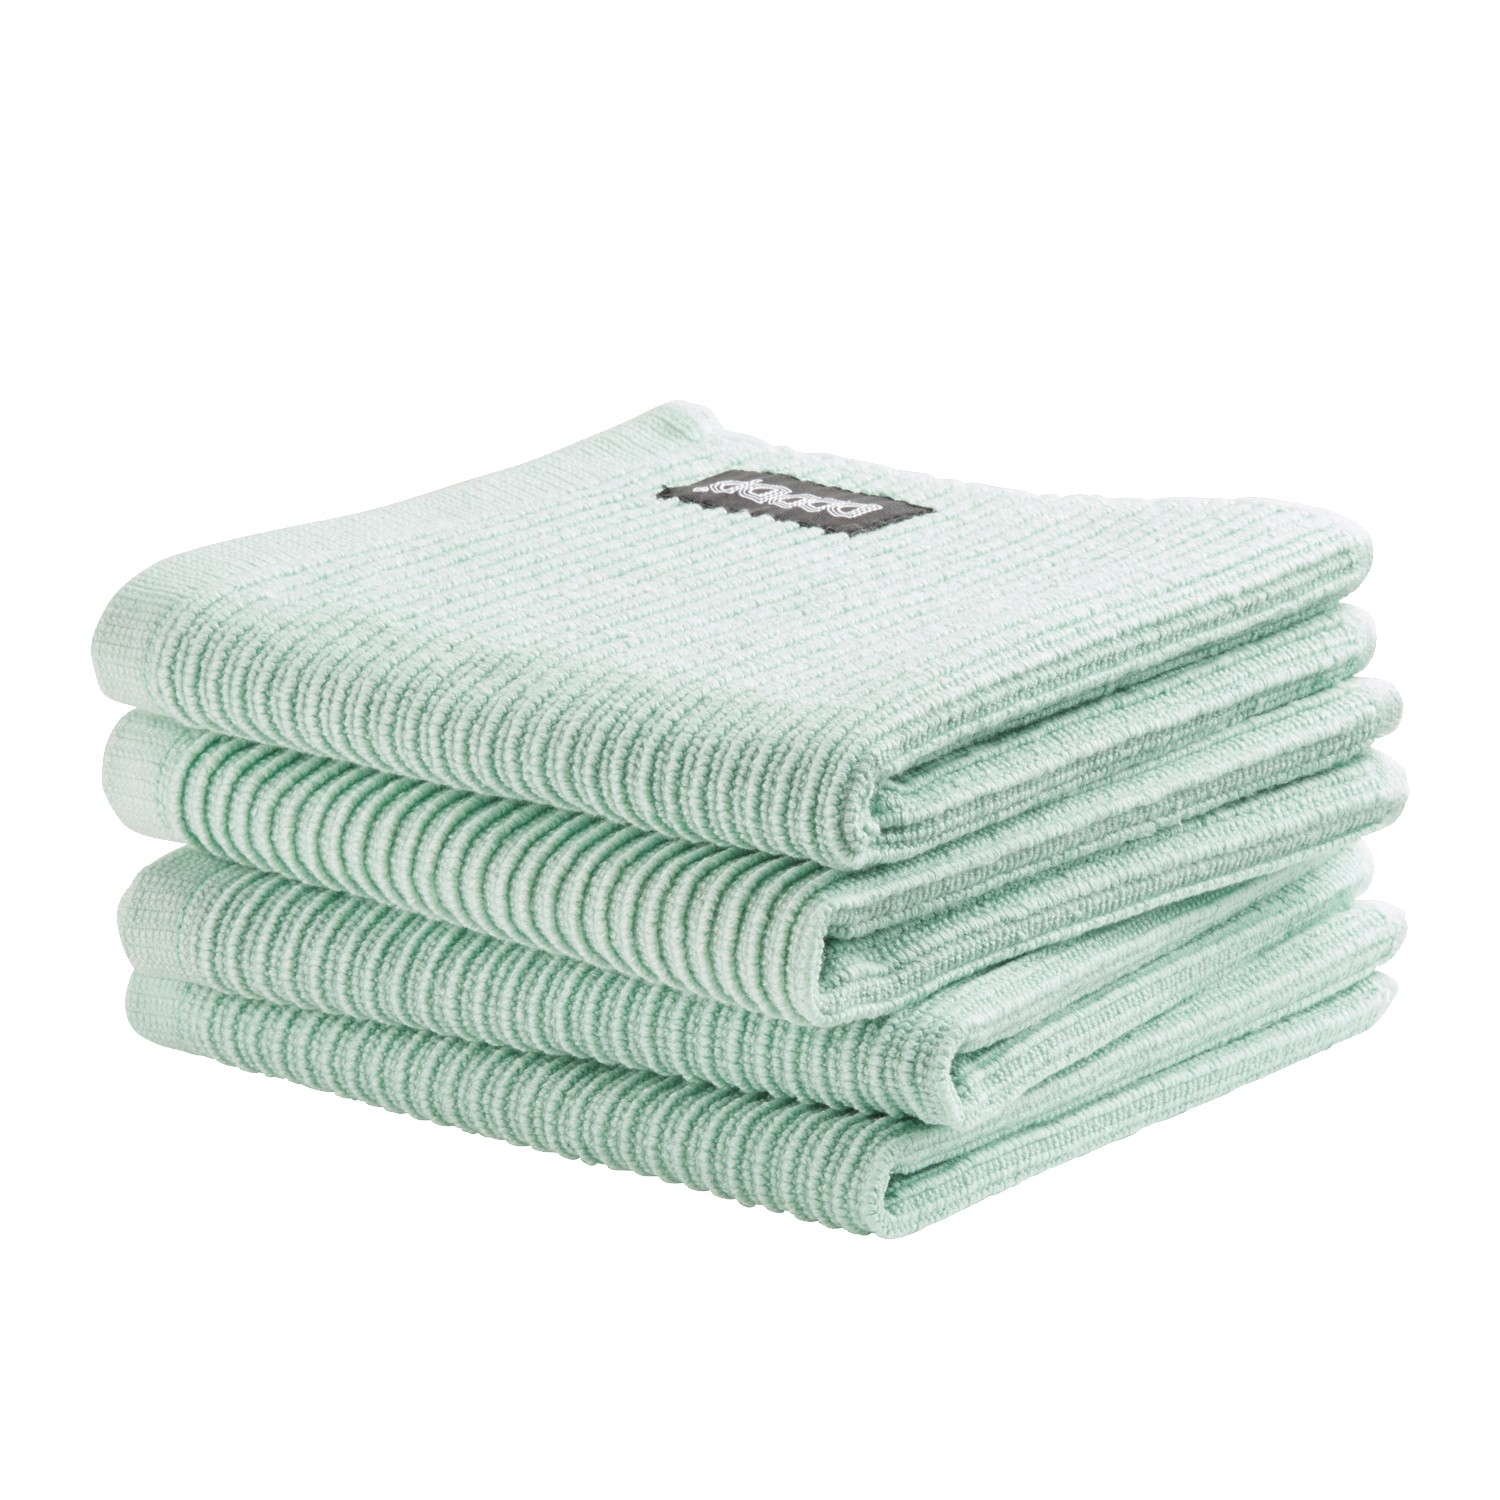 Vaatdoek Basic Clean | Pastel green | 30 x 30 cm